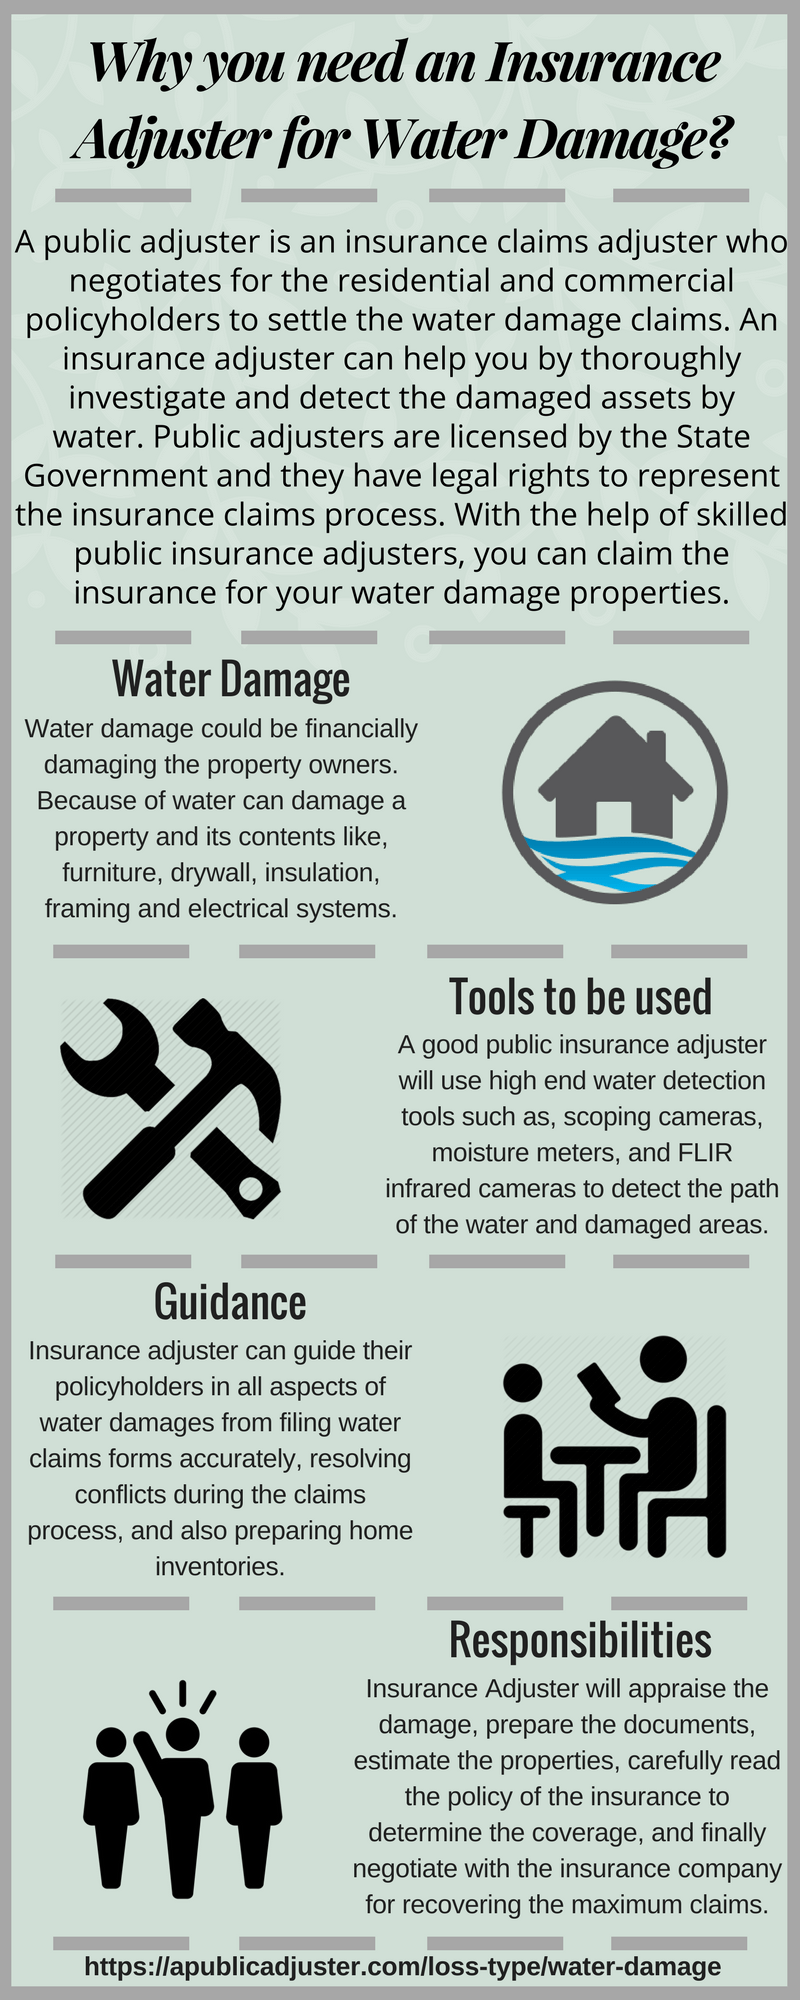 why-you-need-an-insurance-adjuster-for-water-damage-infographic-plaza